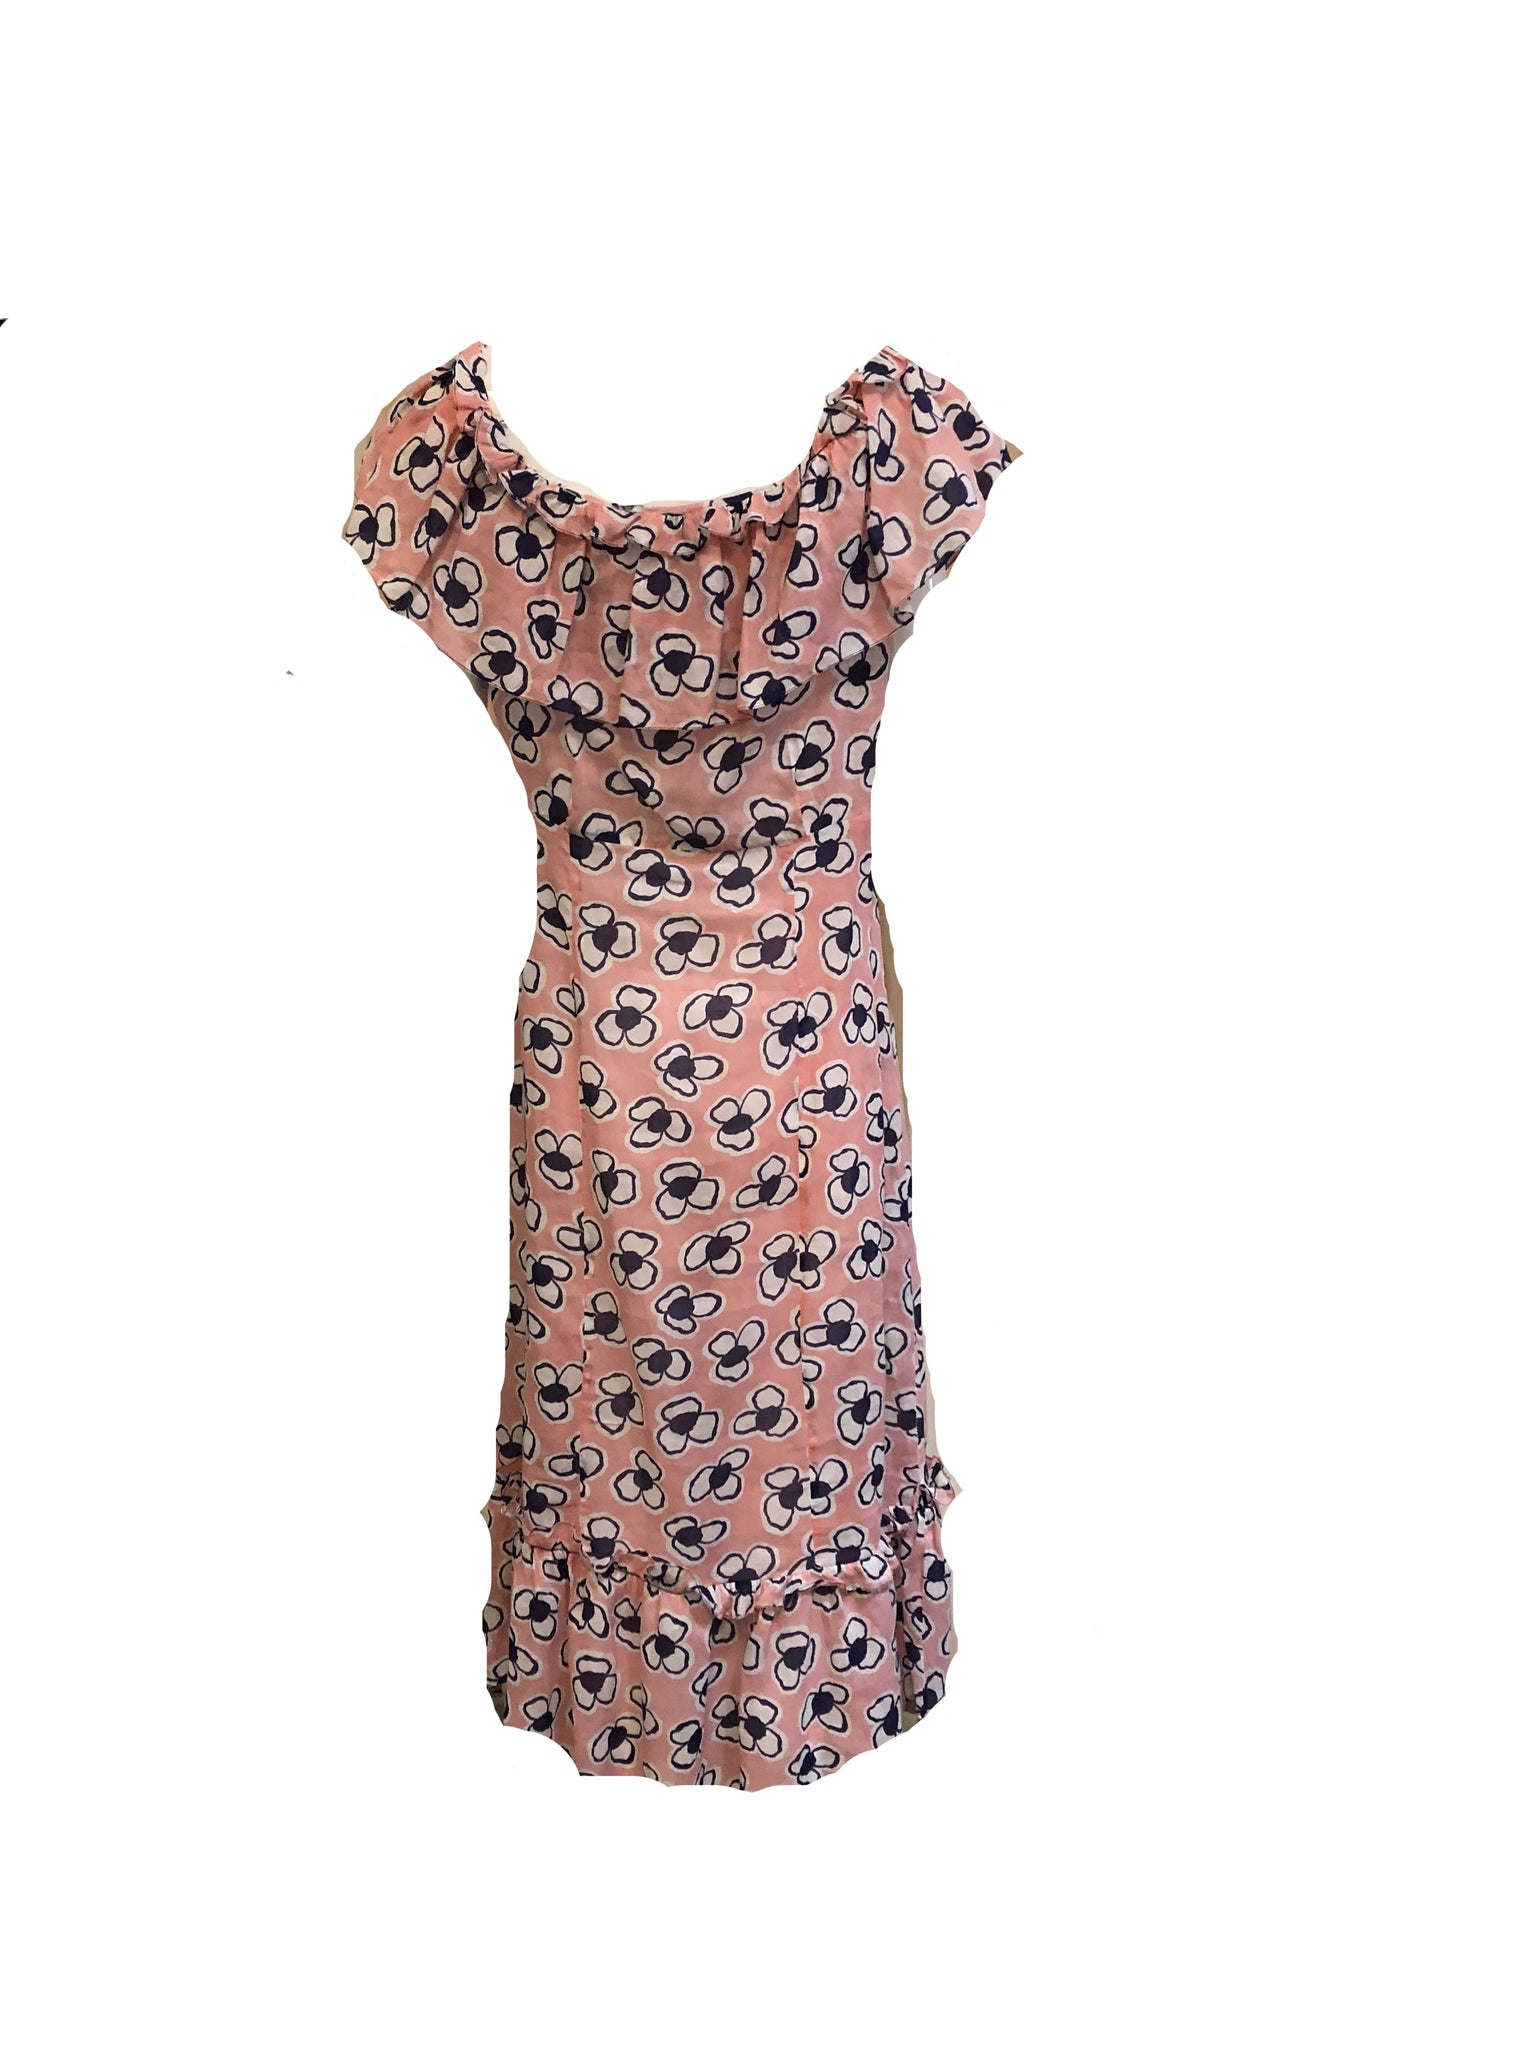 30s Dress Darling Pink Floral Summer Cotton BACK 2 of 3